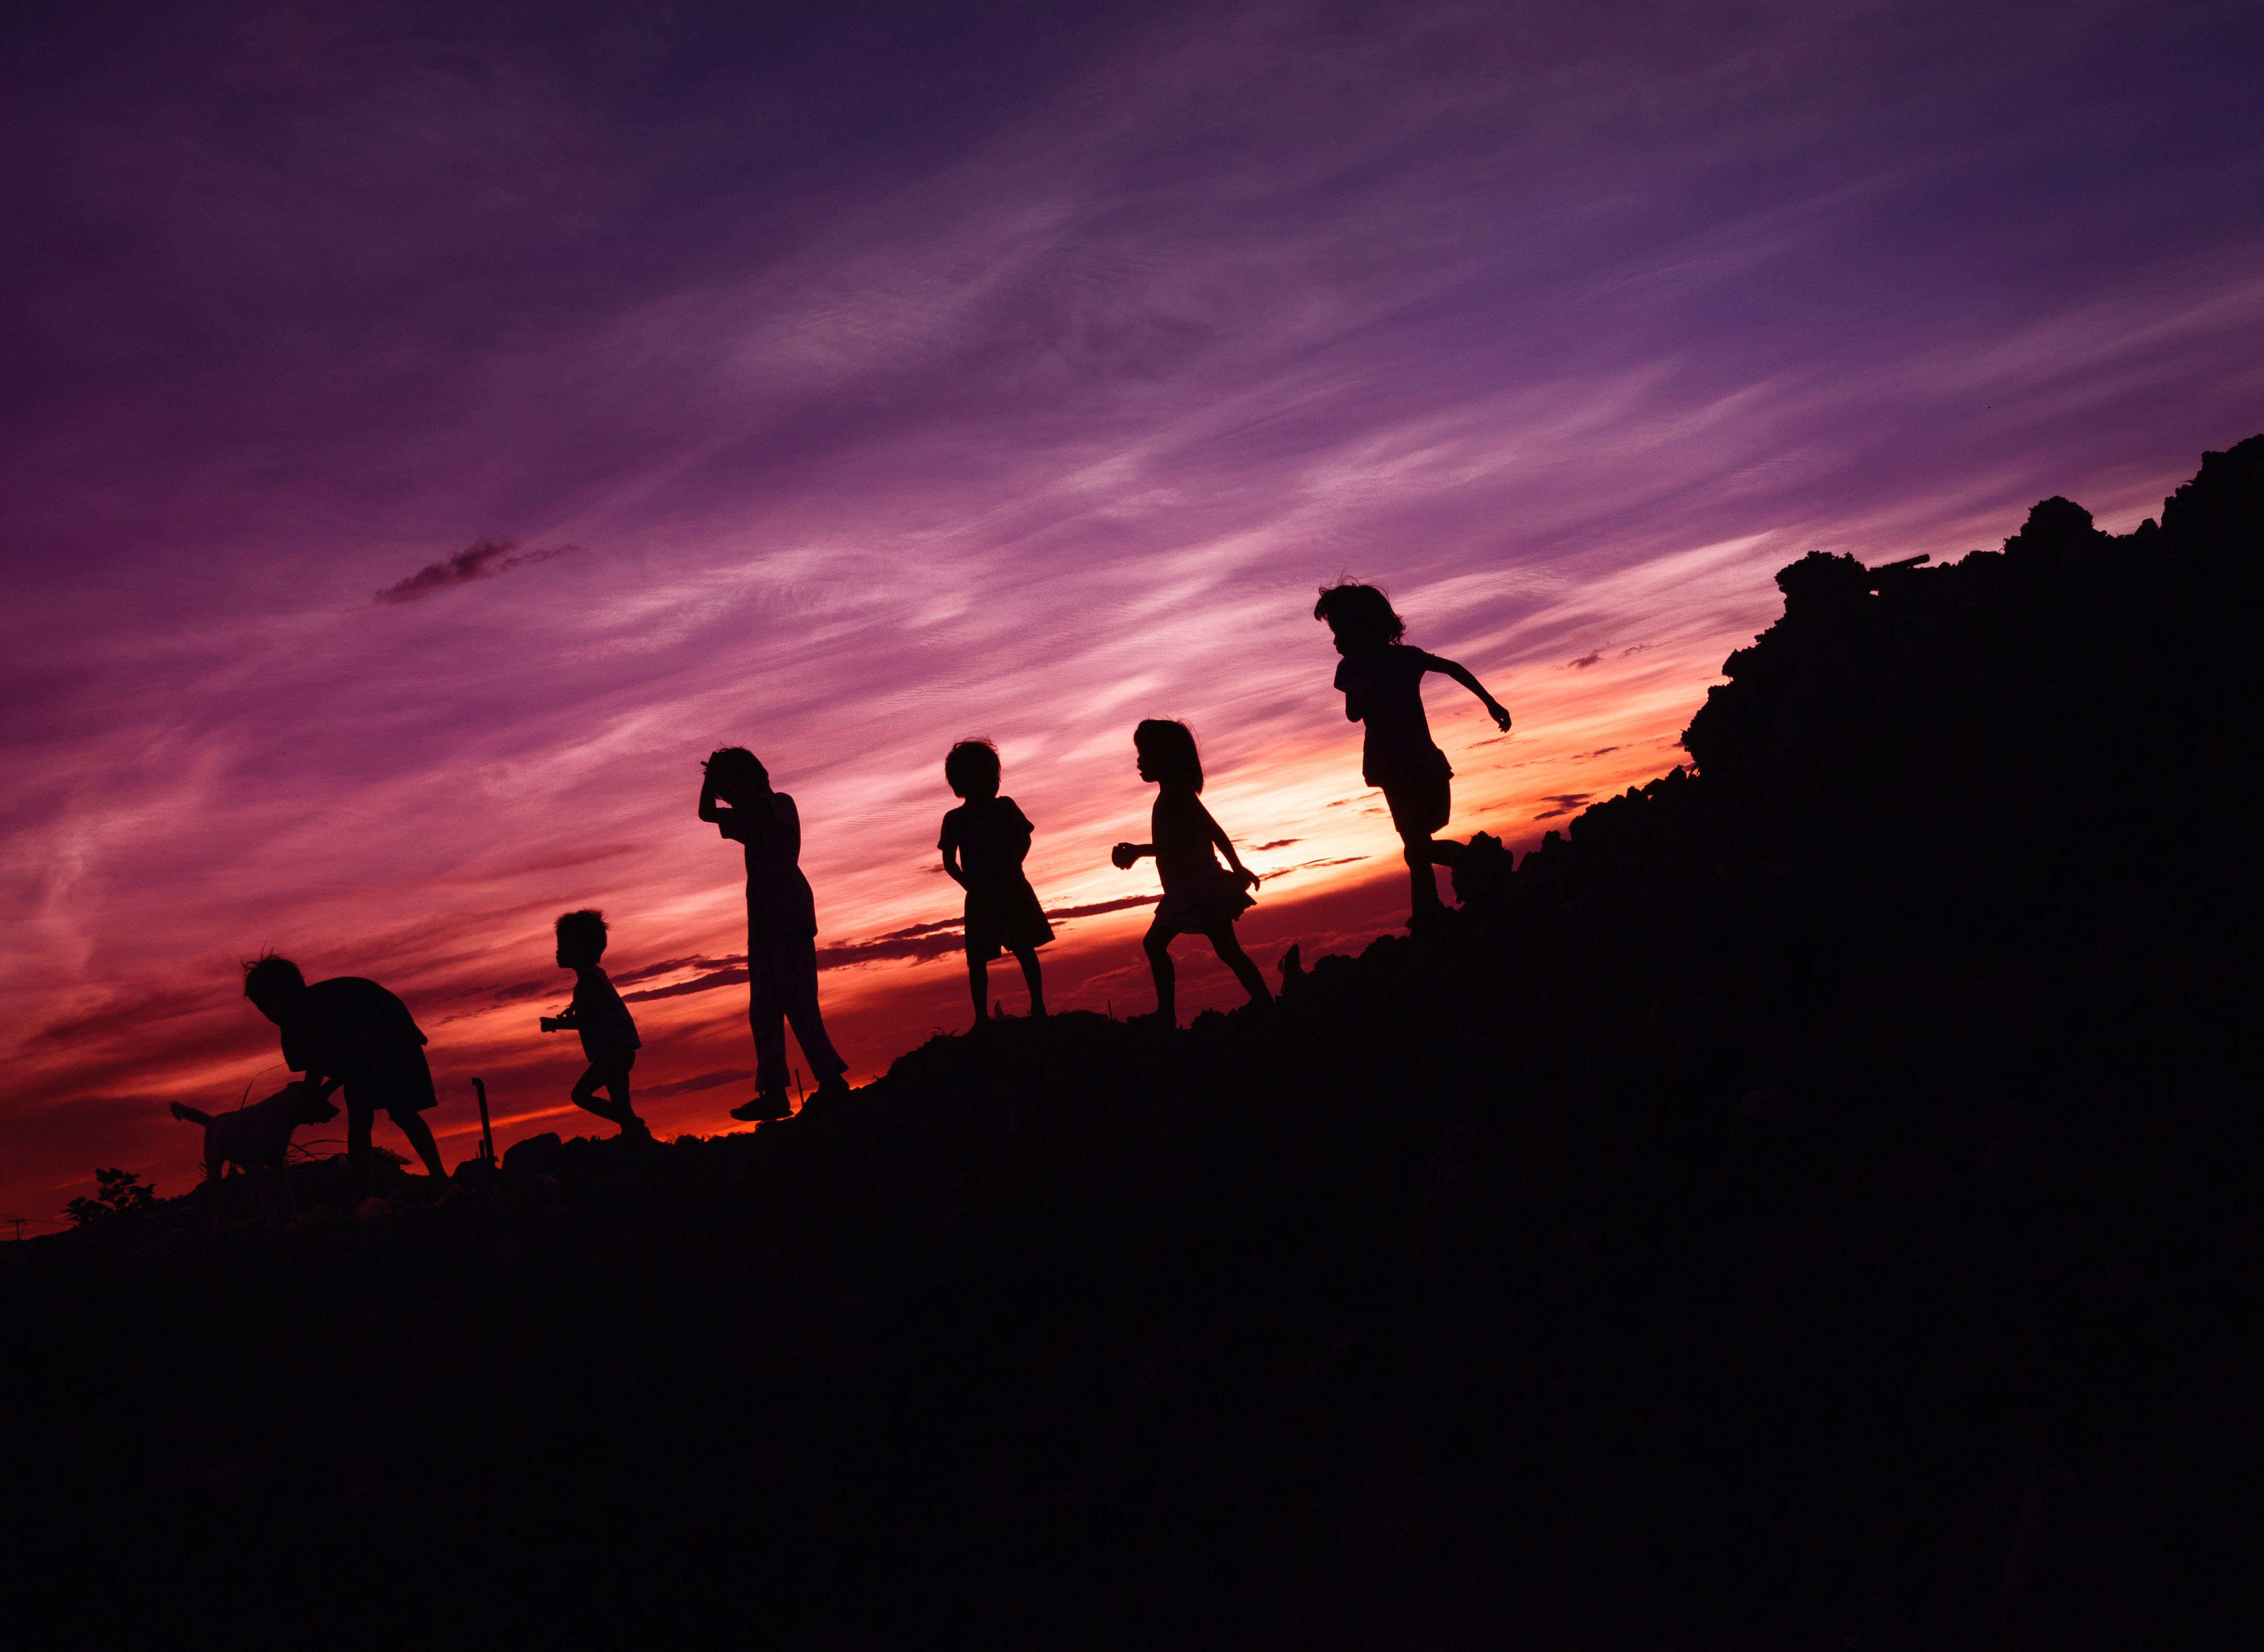 Heroes and Genius... children silhouetted against a colourful sunset